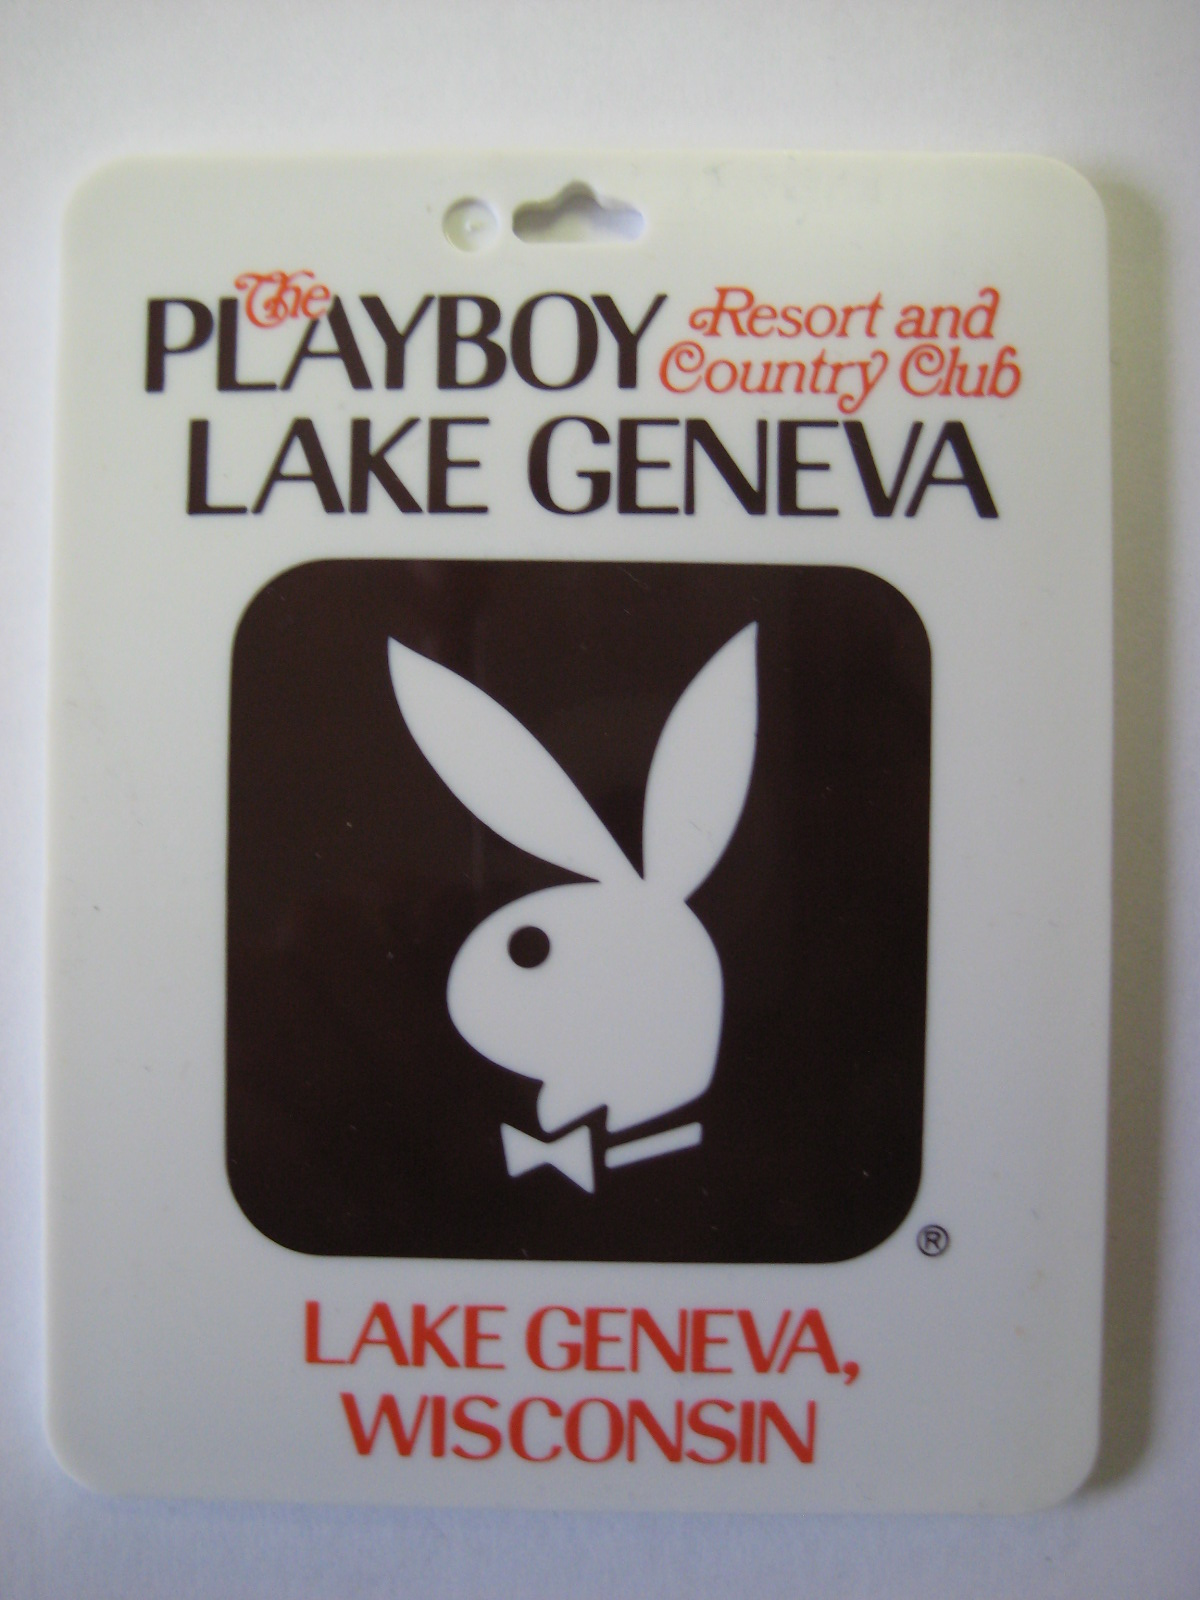 Playboy Resort and Country Club Lake Geneva